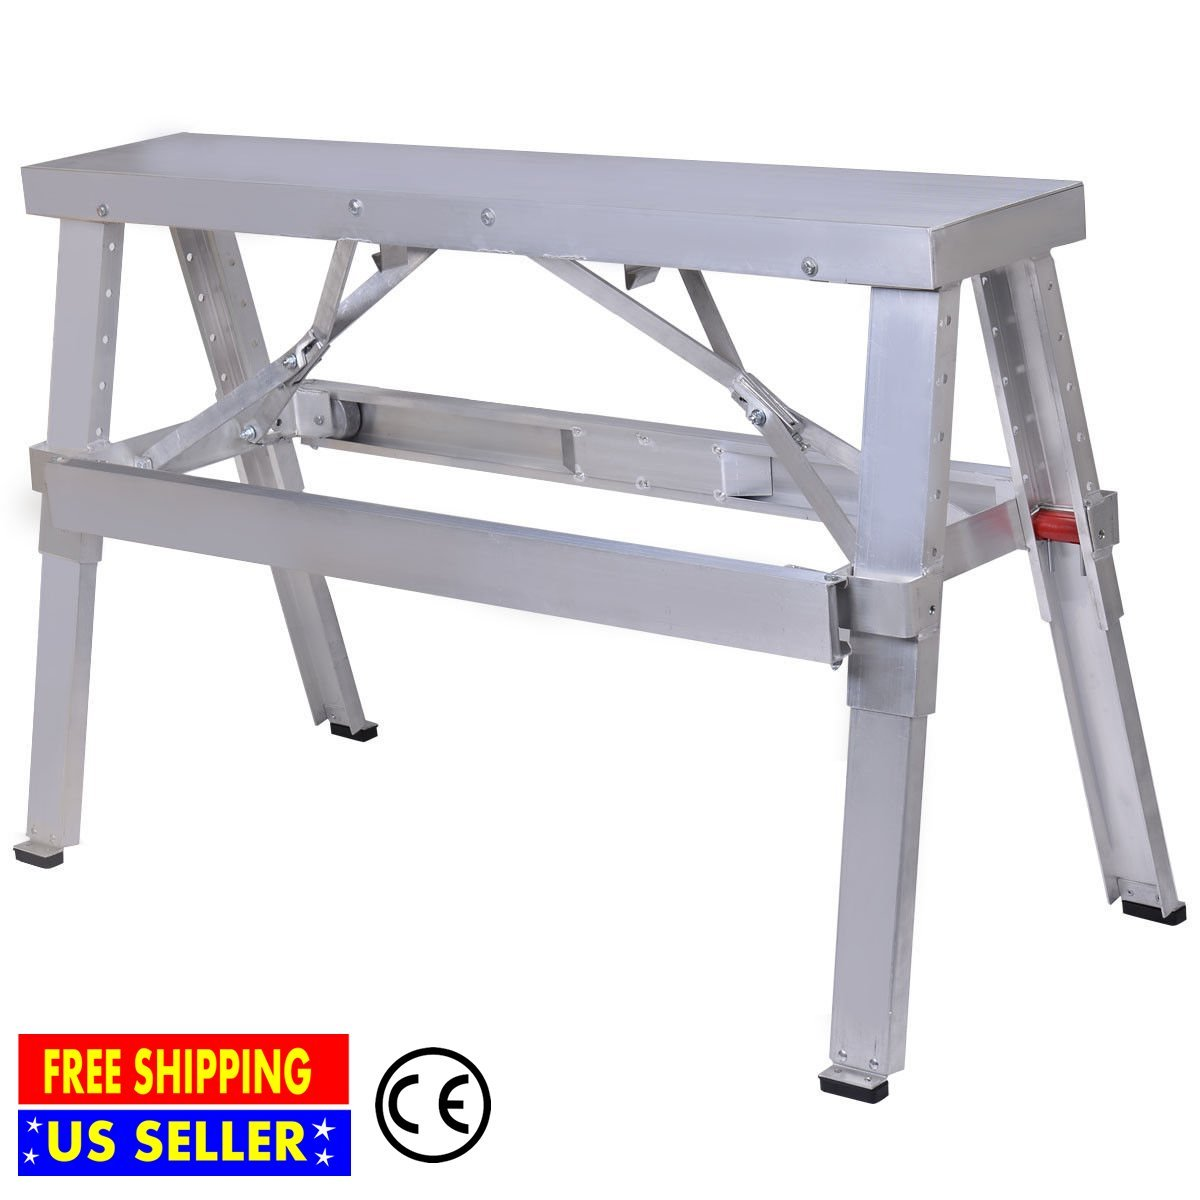 Professional Aluminum Heavy Duty Drywall Walk Up Adjustable Folding Bench for Bench Sawhorse Step Ladder | Large Load Capacity 485 Lbs | Eye Catching Extension Legs| Painting Hanging | 18 - 30'' Silver